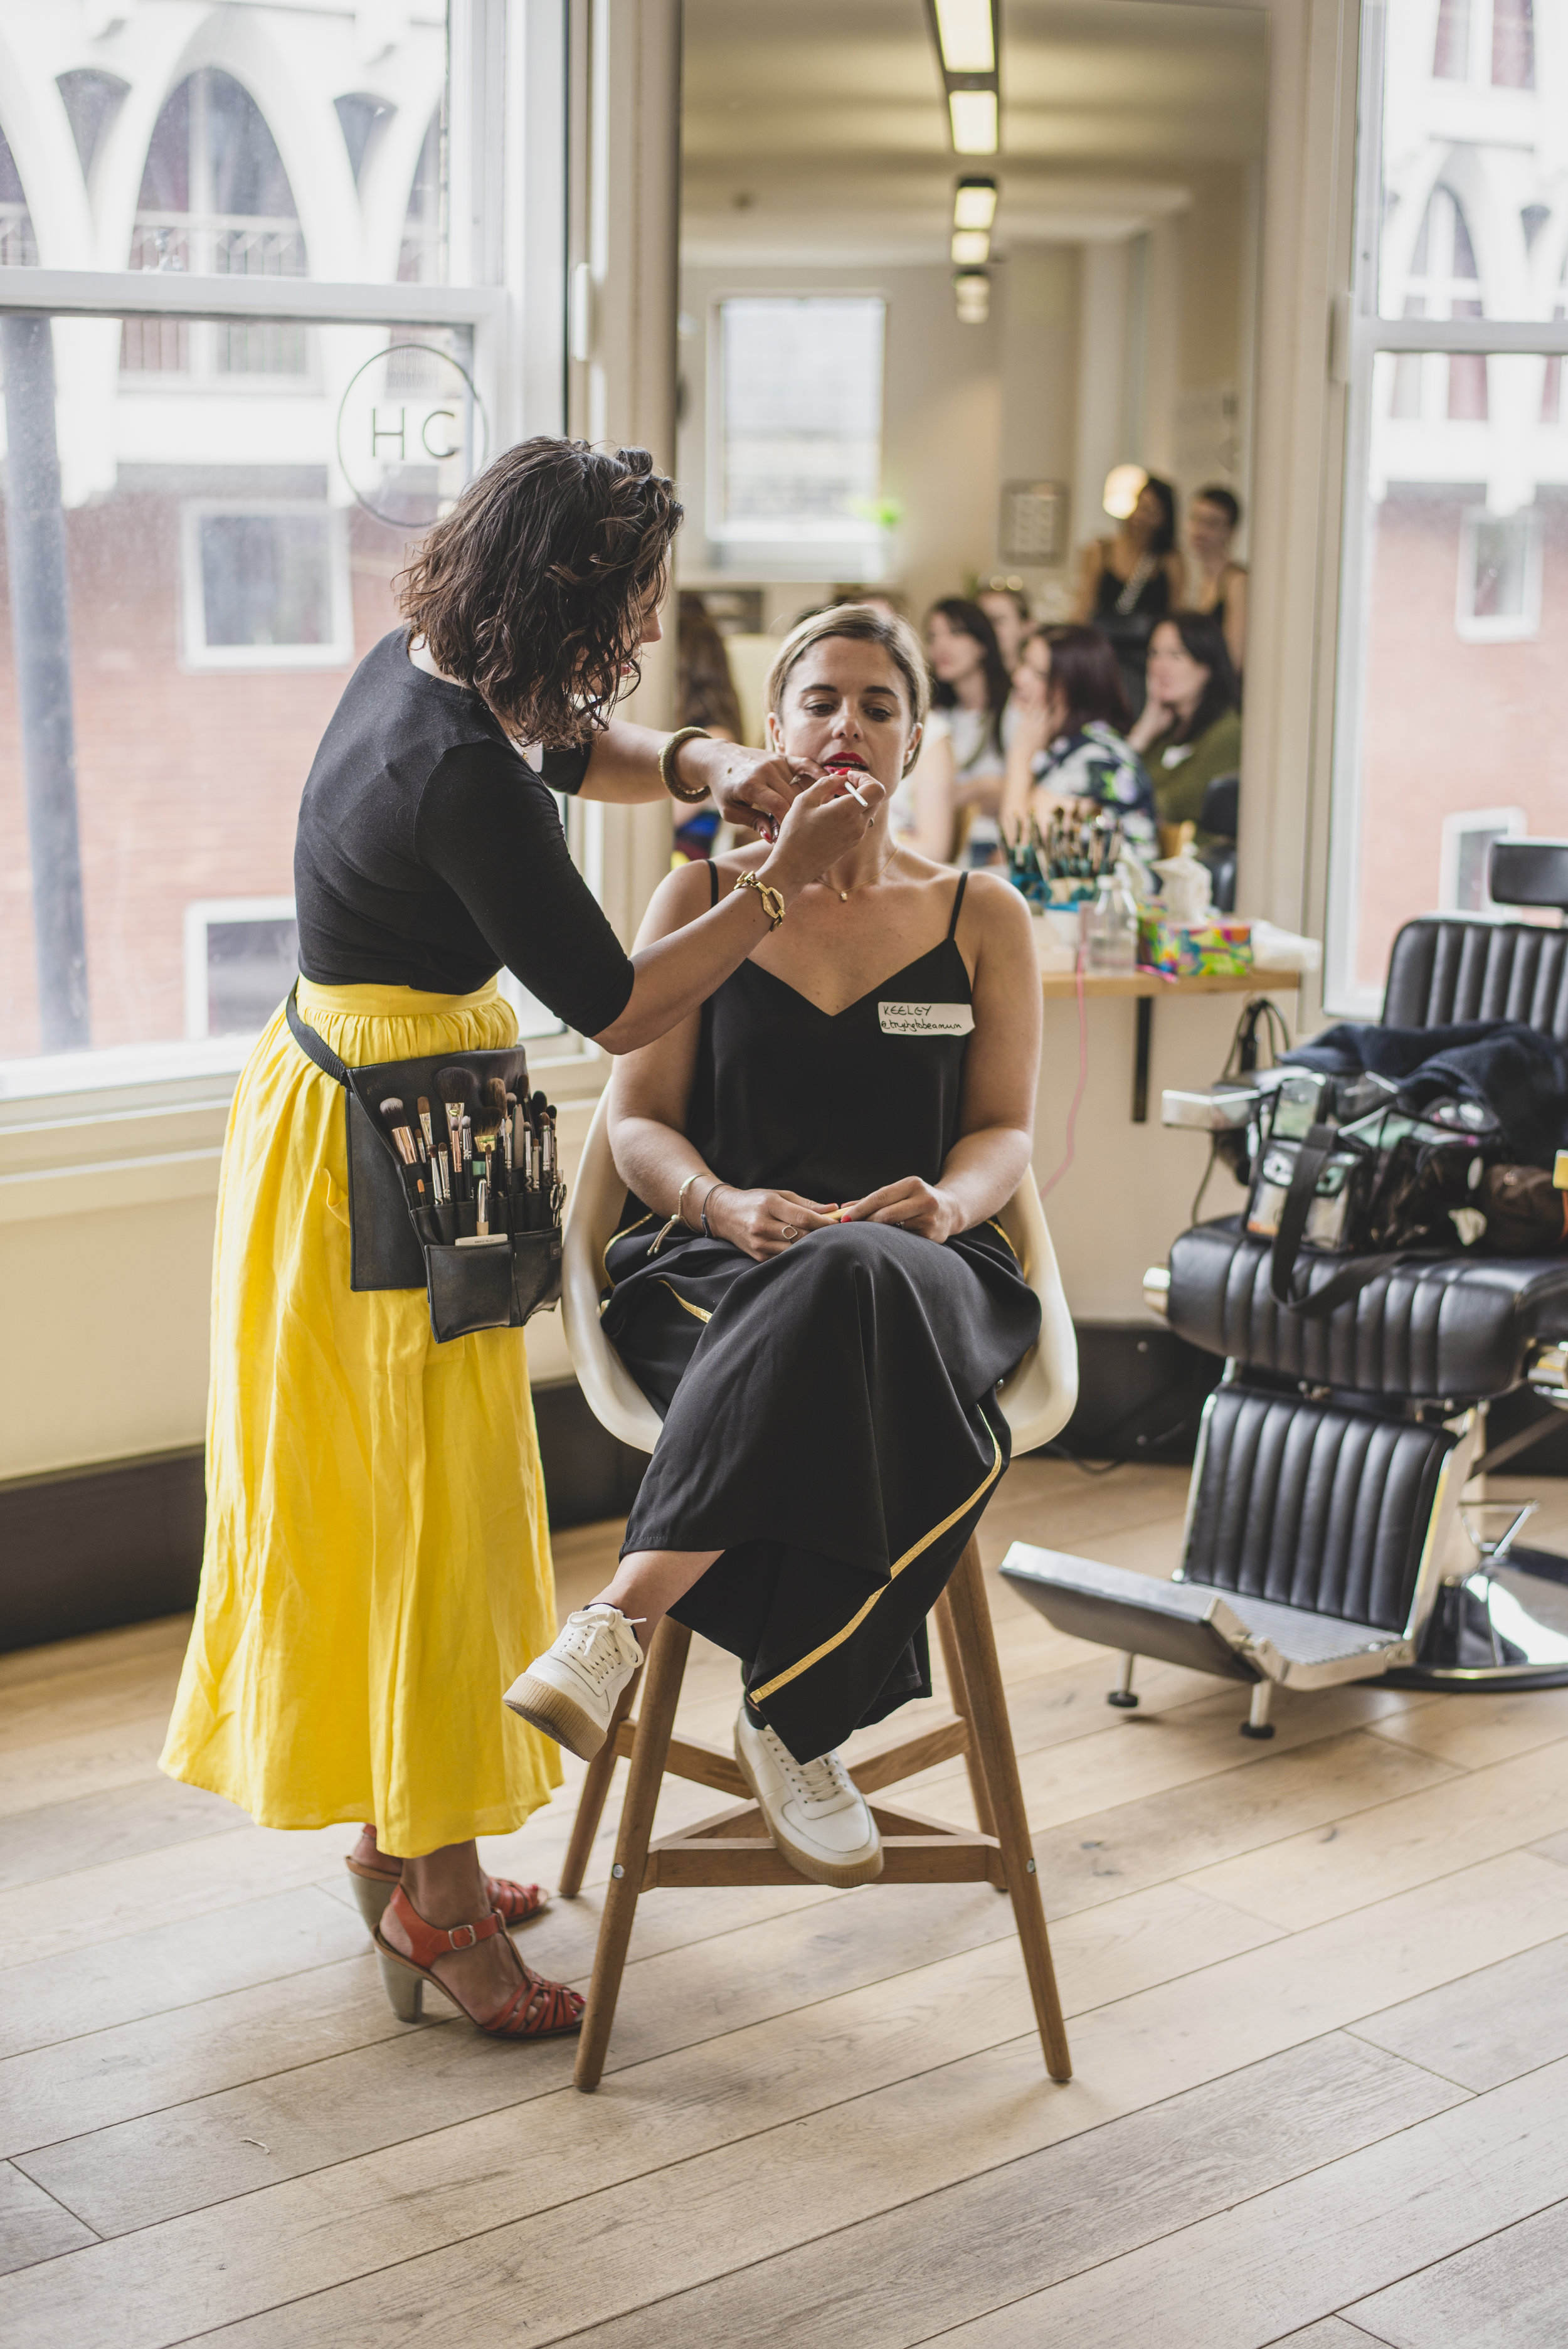 EVENT/MAKEUP COWORKING SPACE CENTRAL LONDON